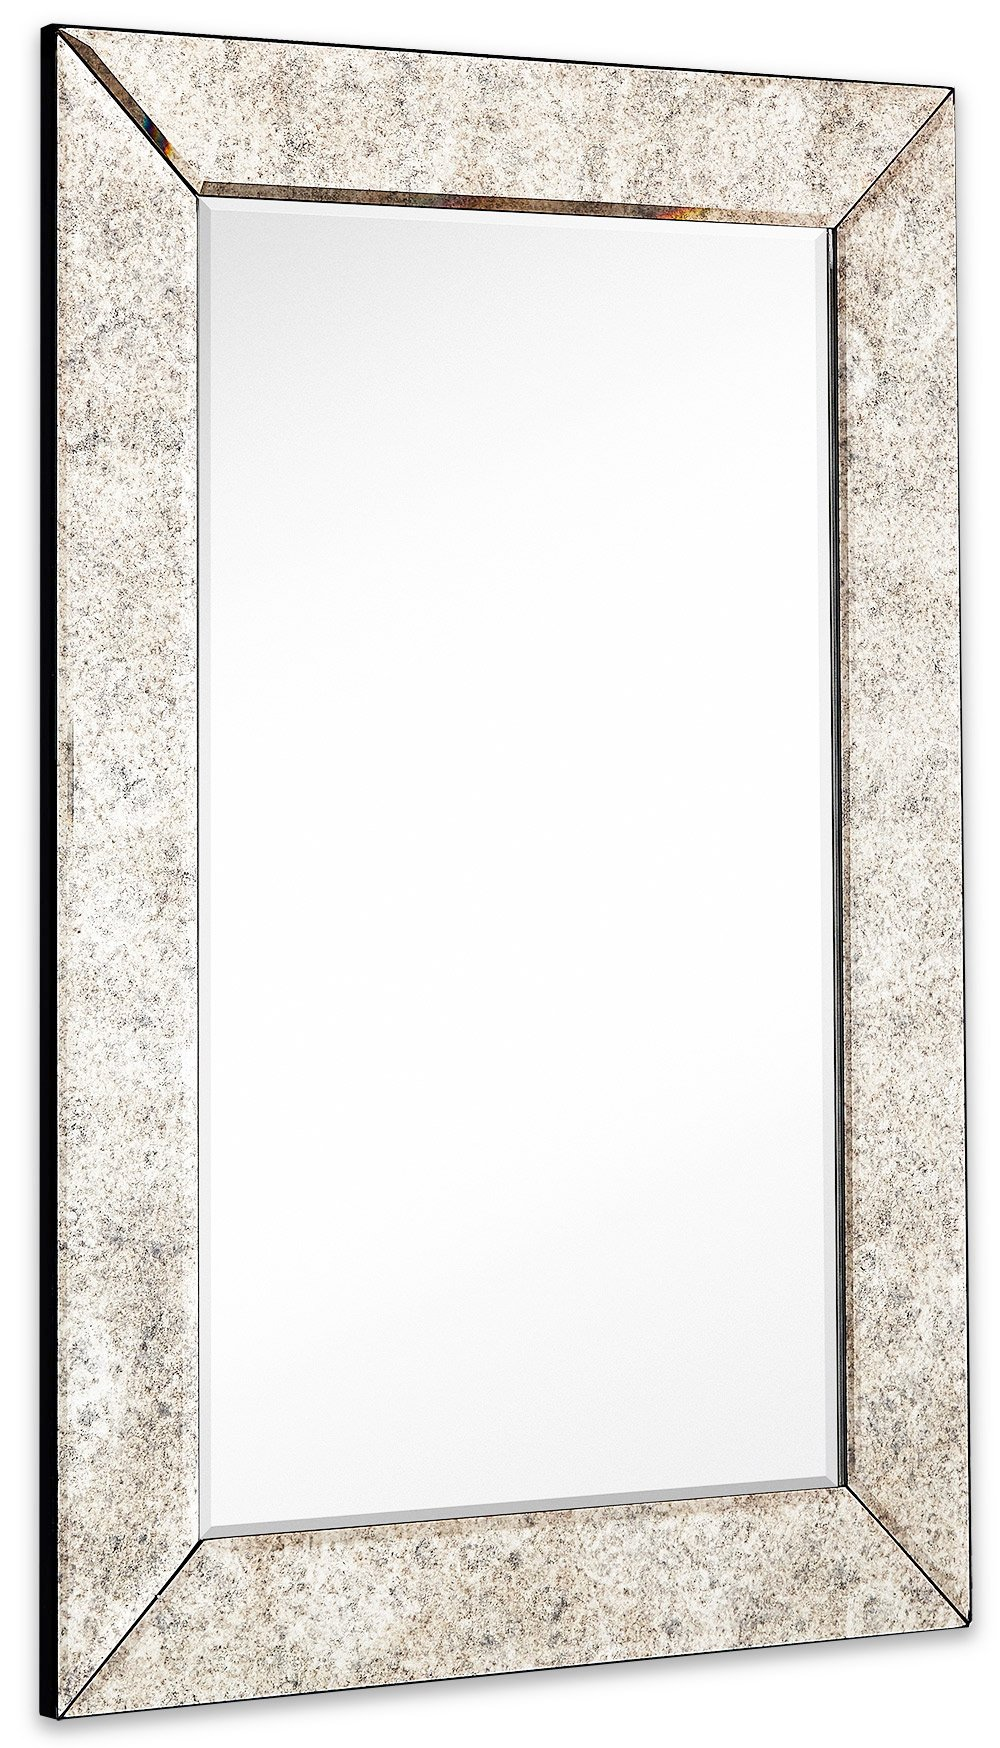 a3bfb55fb4de Get Quotations · Large Antiqued Framed Wall Mirror 3.5 inch Antique Frame  Rectangular Mirrored Glass Panel